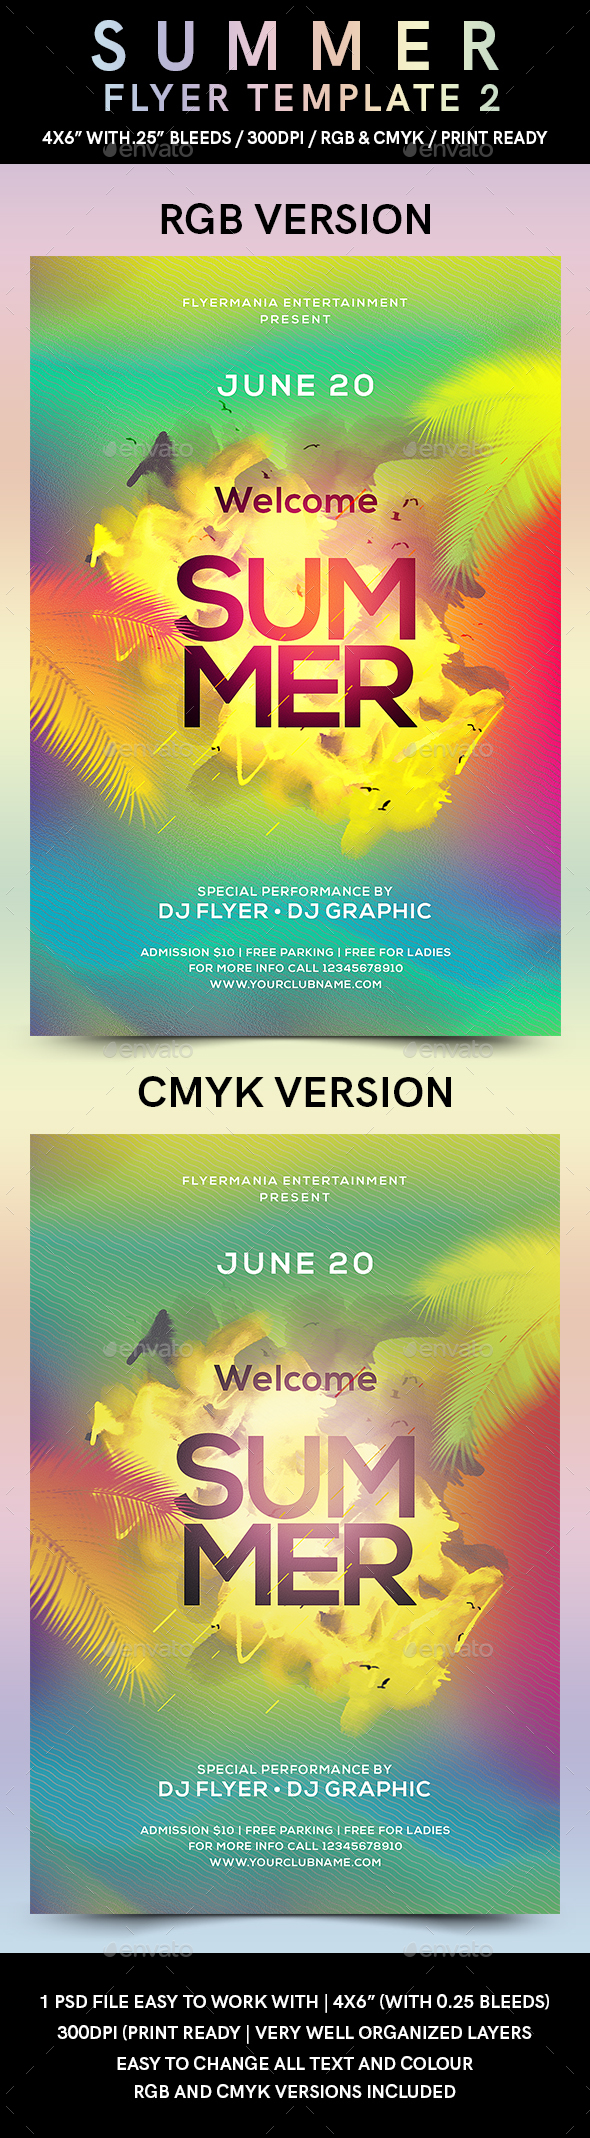 summer flyer template 2 by flyermania graphicriver